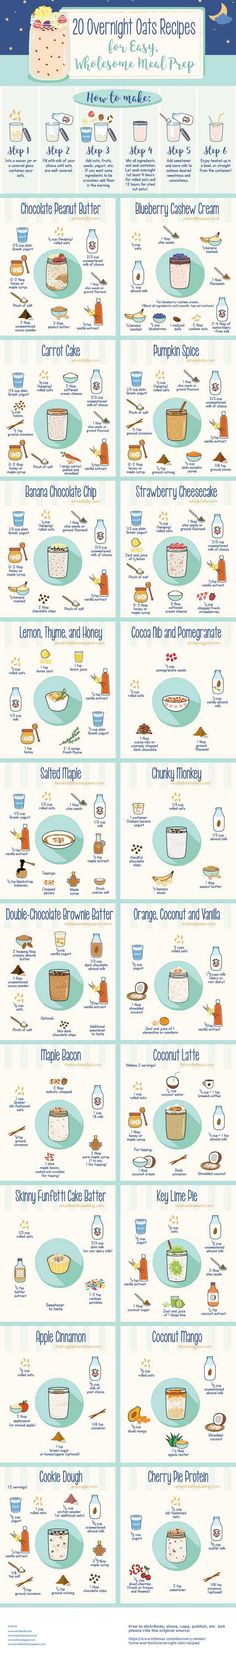 Super-healthy overnight oats options (20 recipes) - Imgur